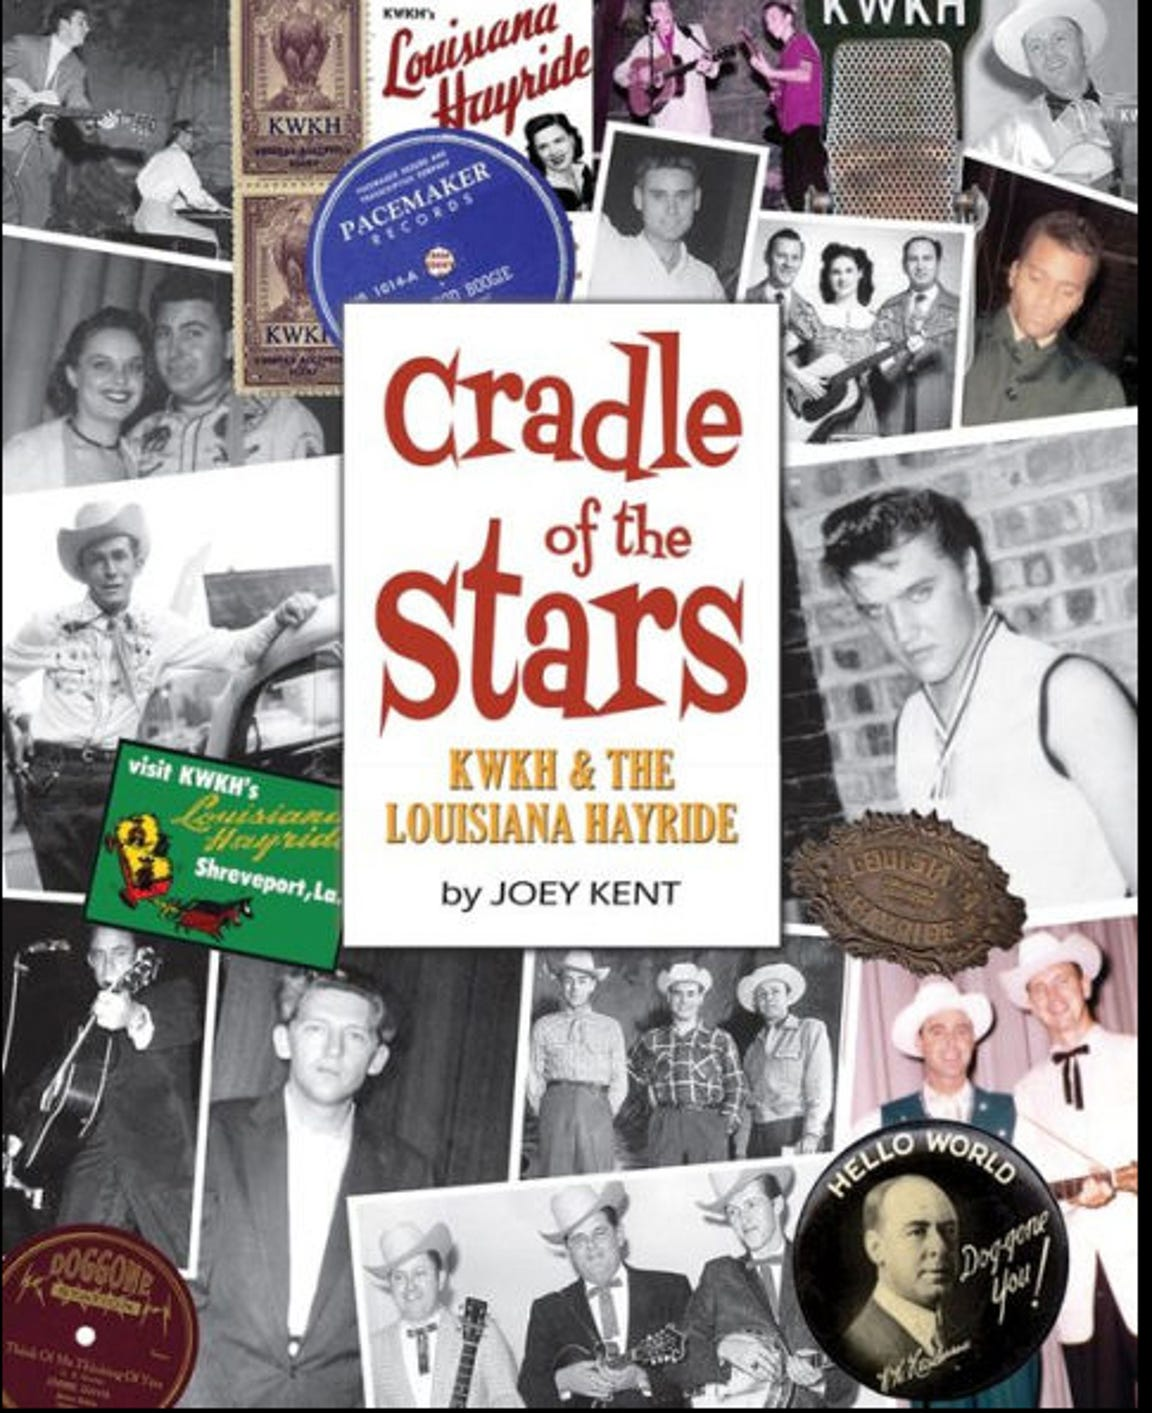 The cover of the new book on KWKH and the Louisiana Hayride.